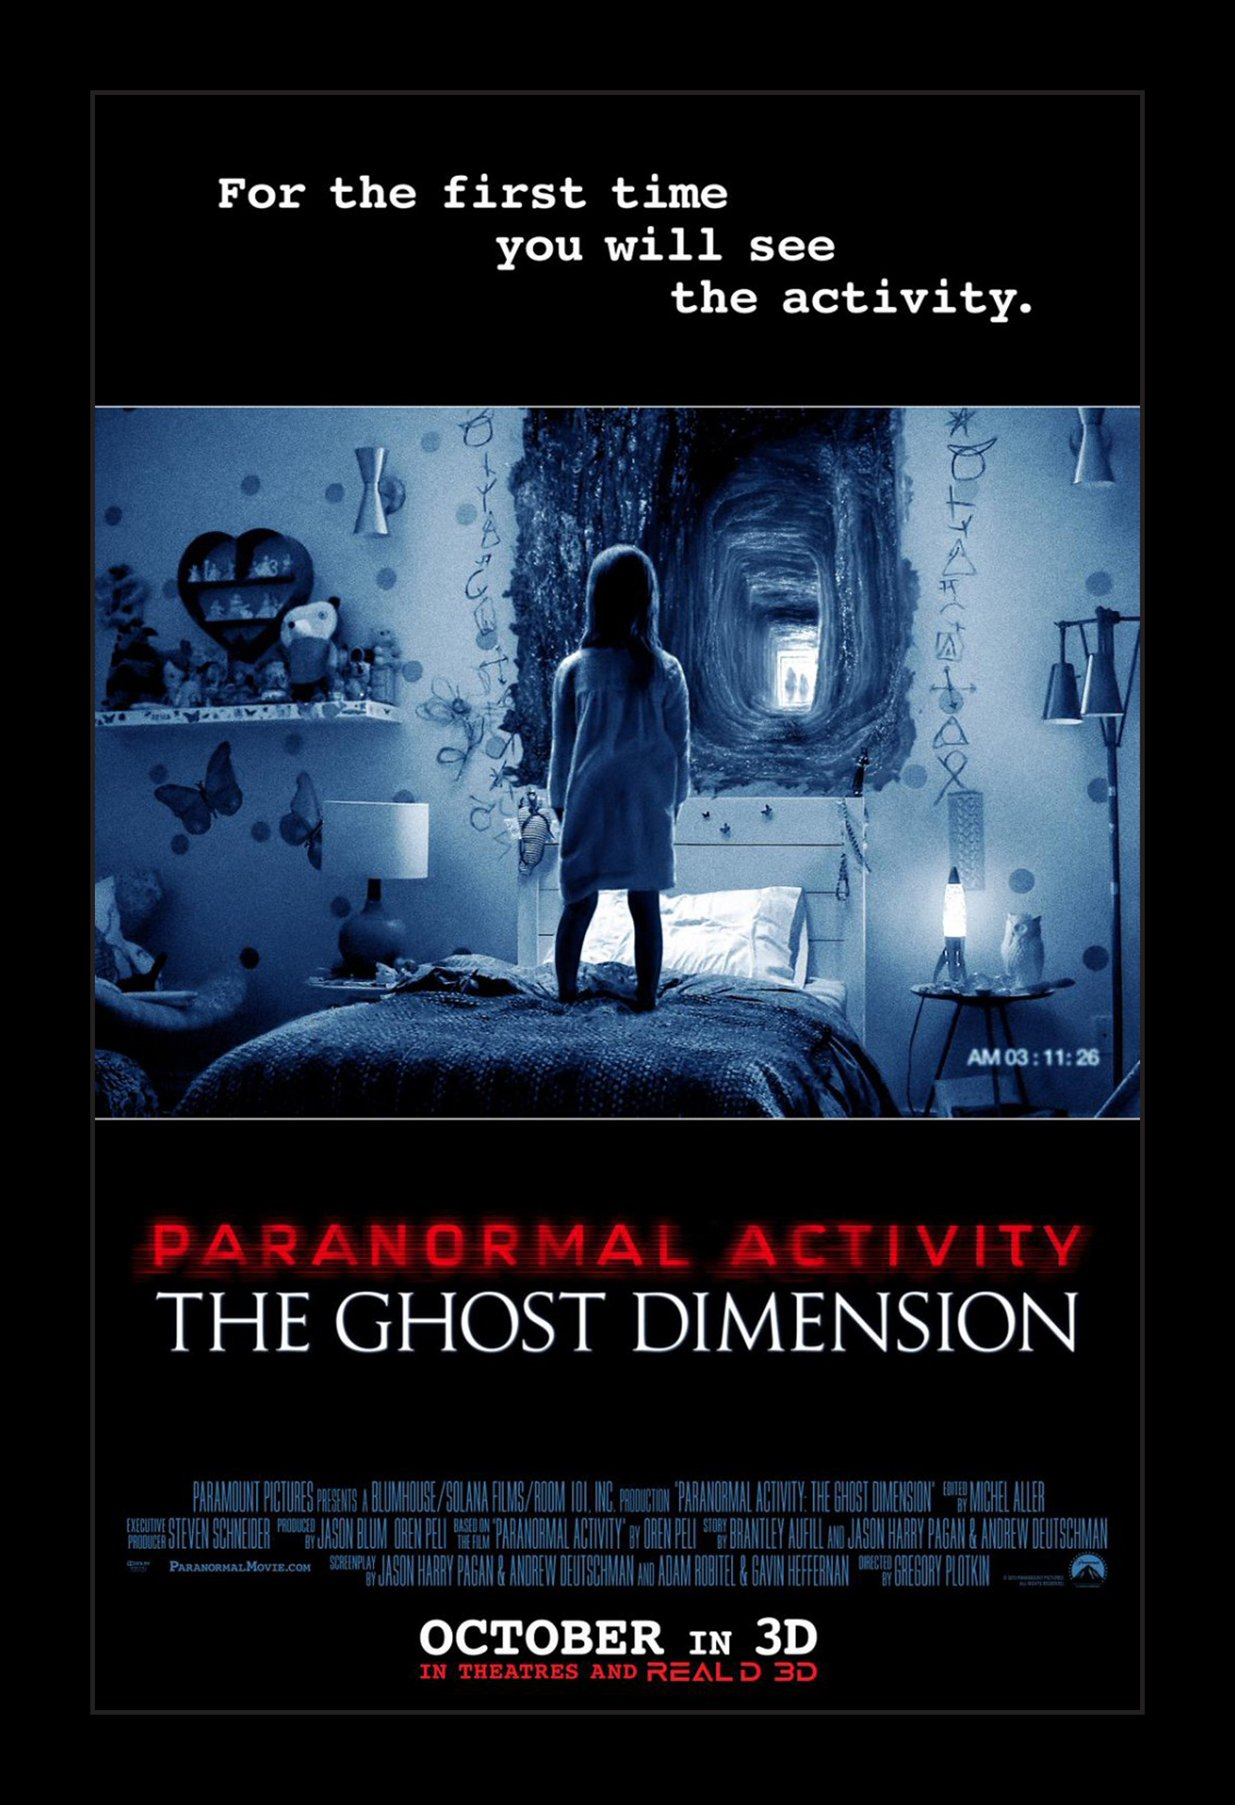 Paranormal Activity the Ghost Dimension - 11x17 Framed Movie Poster by Wallspace